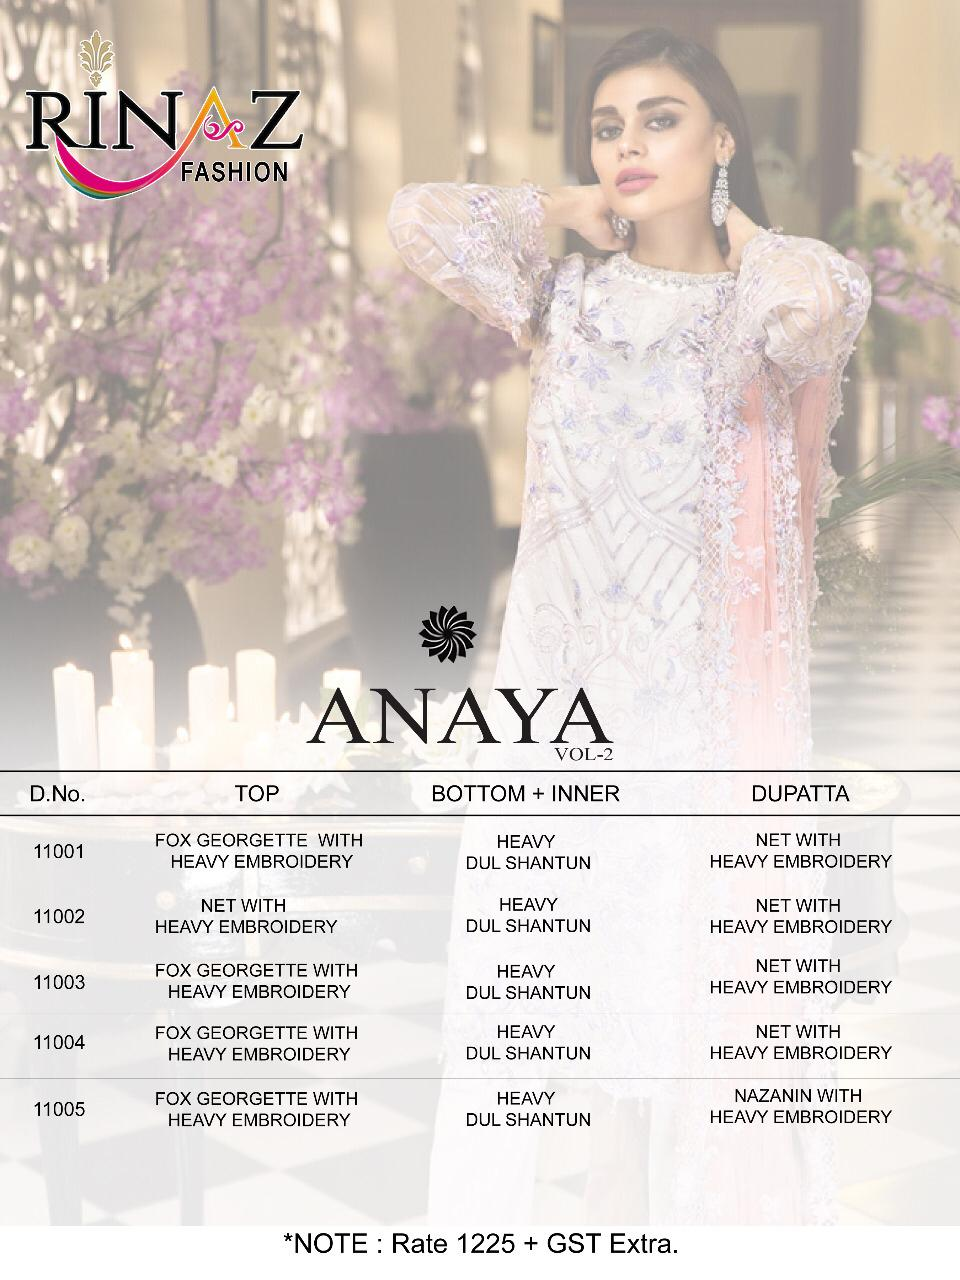 Rinaz Fashion Anaya Vol 2 collection 5